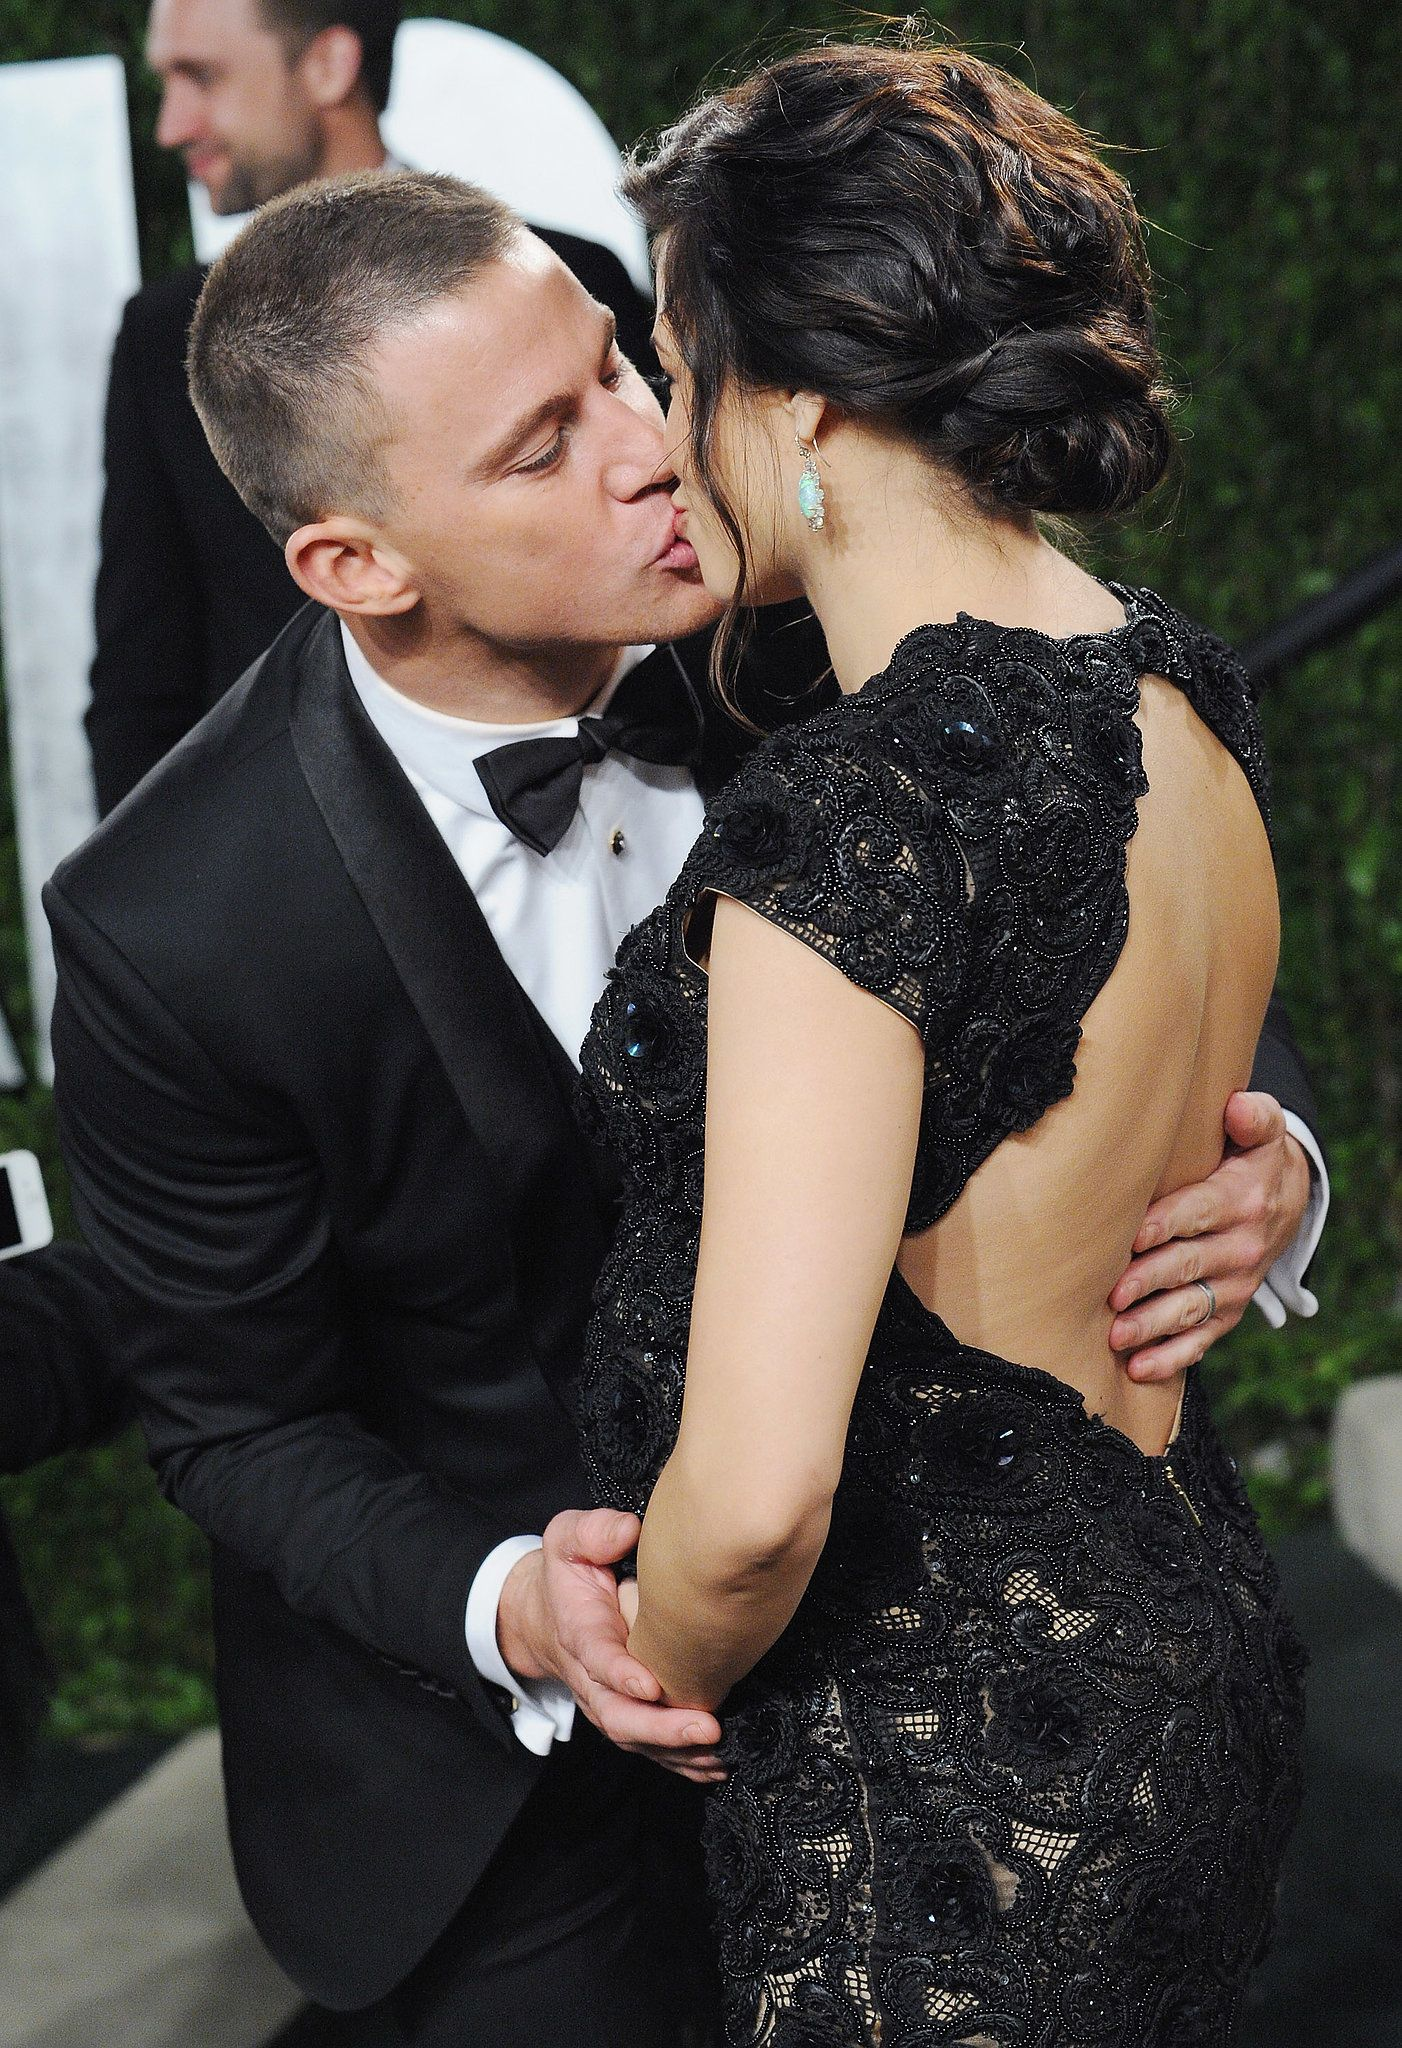 Best Celebrity Kissing Pictures | POPSUGAR Celebrity